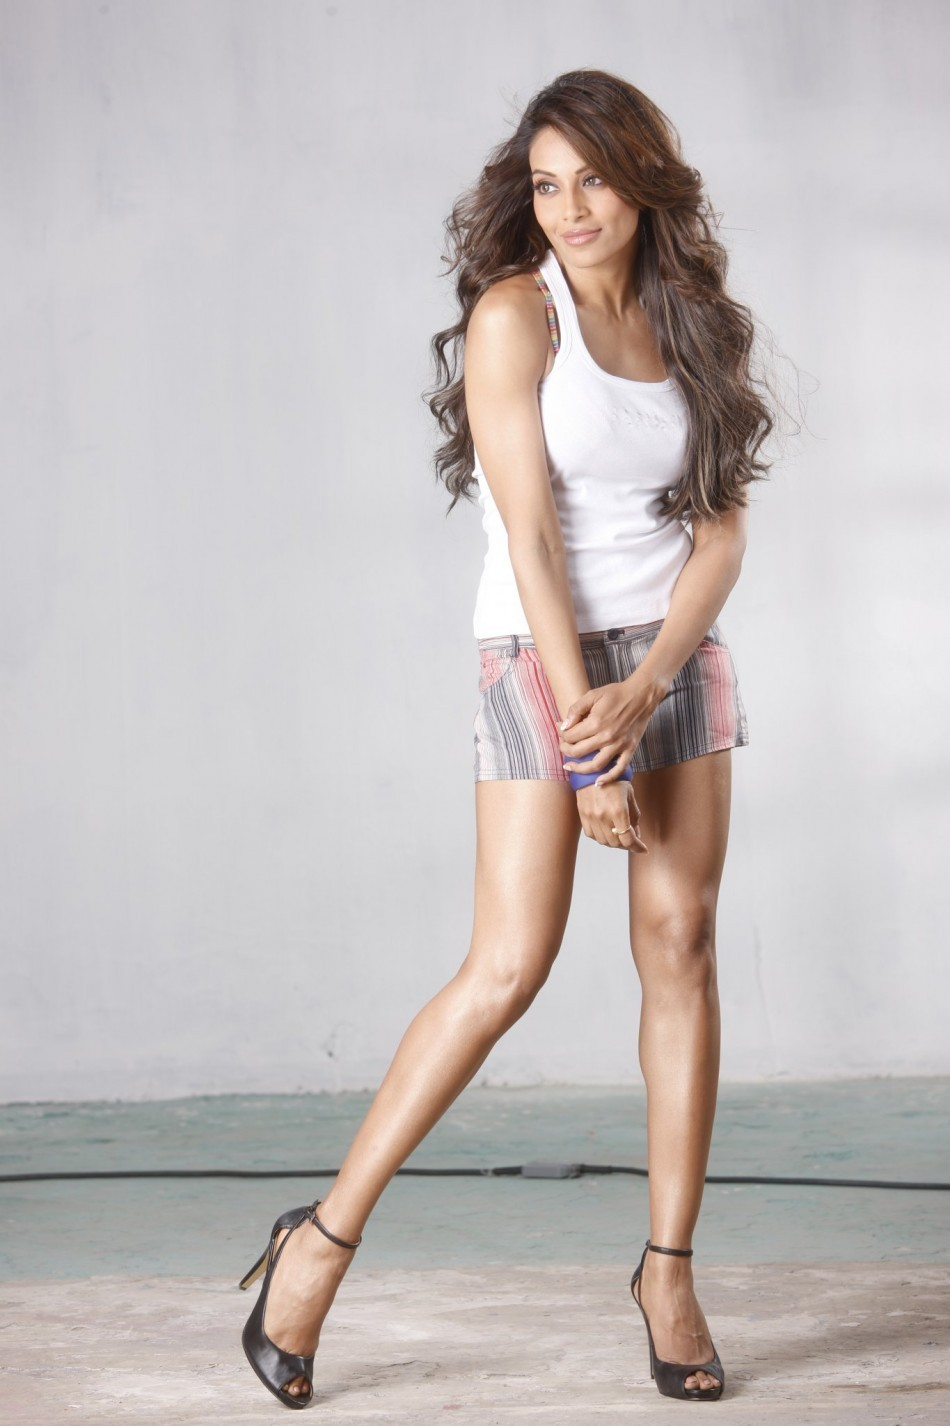 Indian Quit Girl Wallpaper The Most Beautiful Legs In Bollywood Photos Ibtimes India